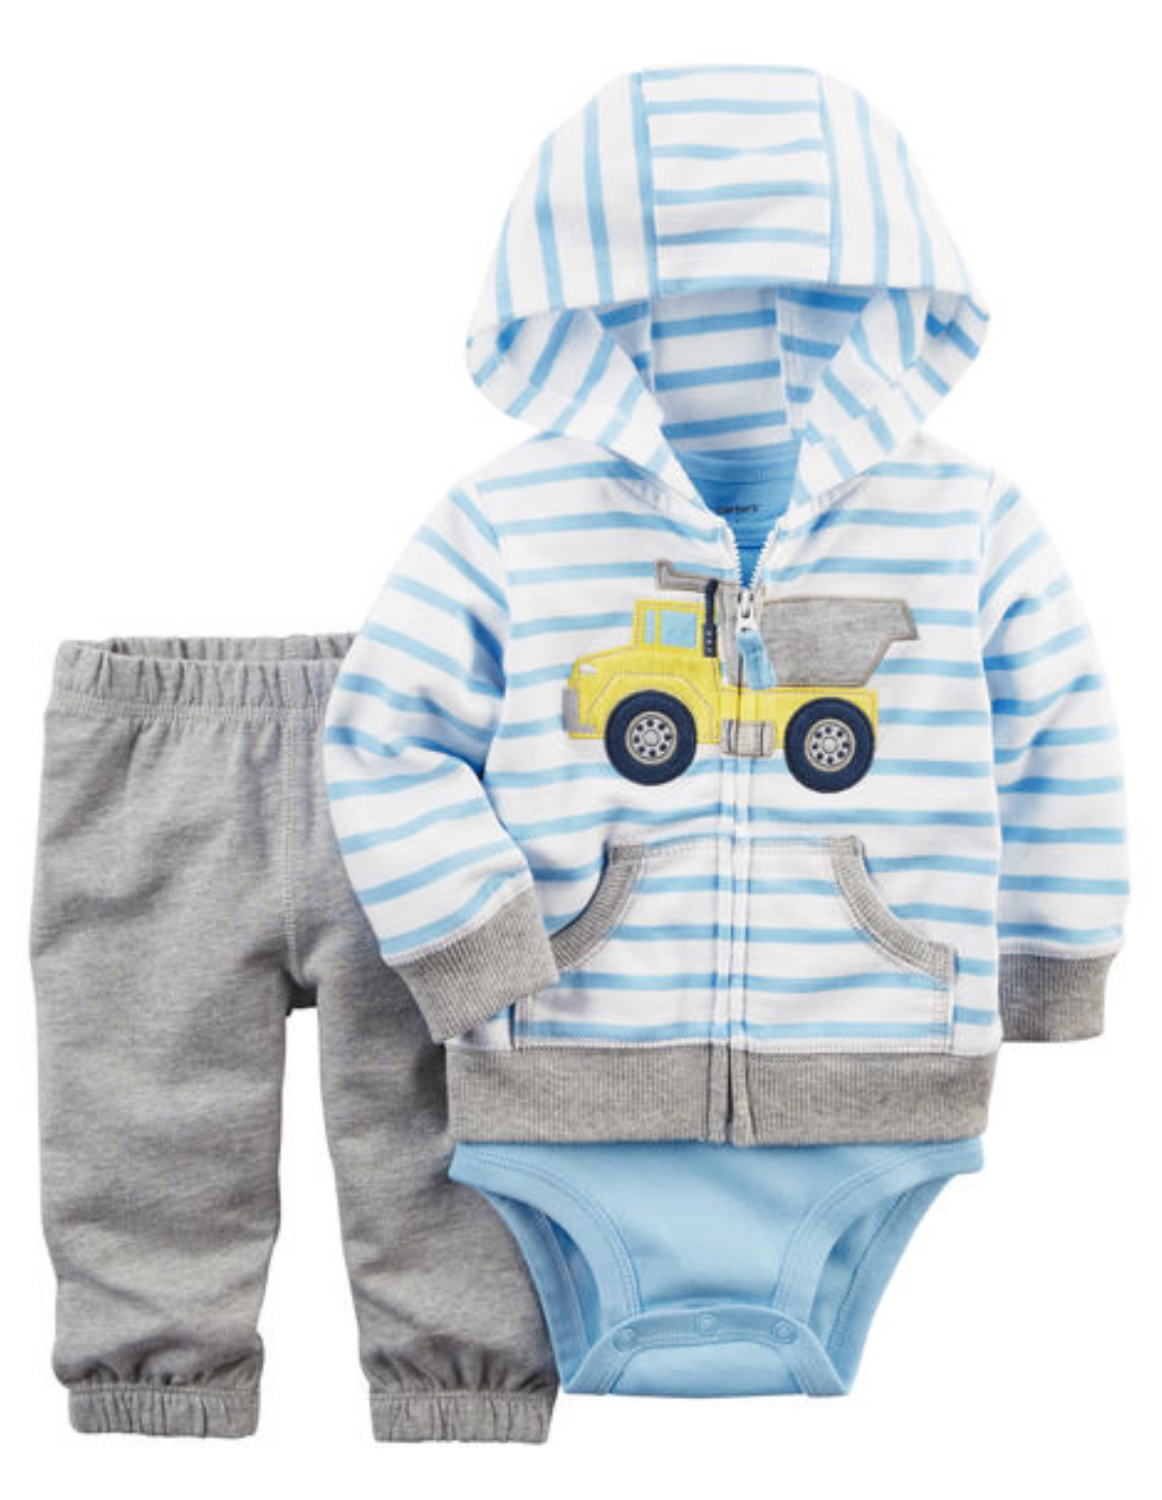 Where Can I Buy Carters Baby Clothes In Australia